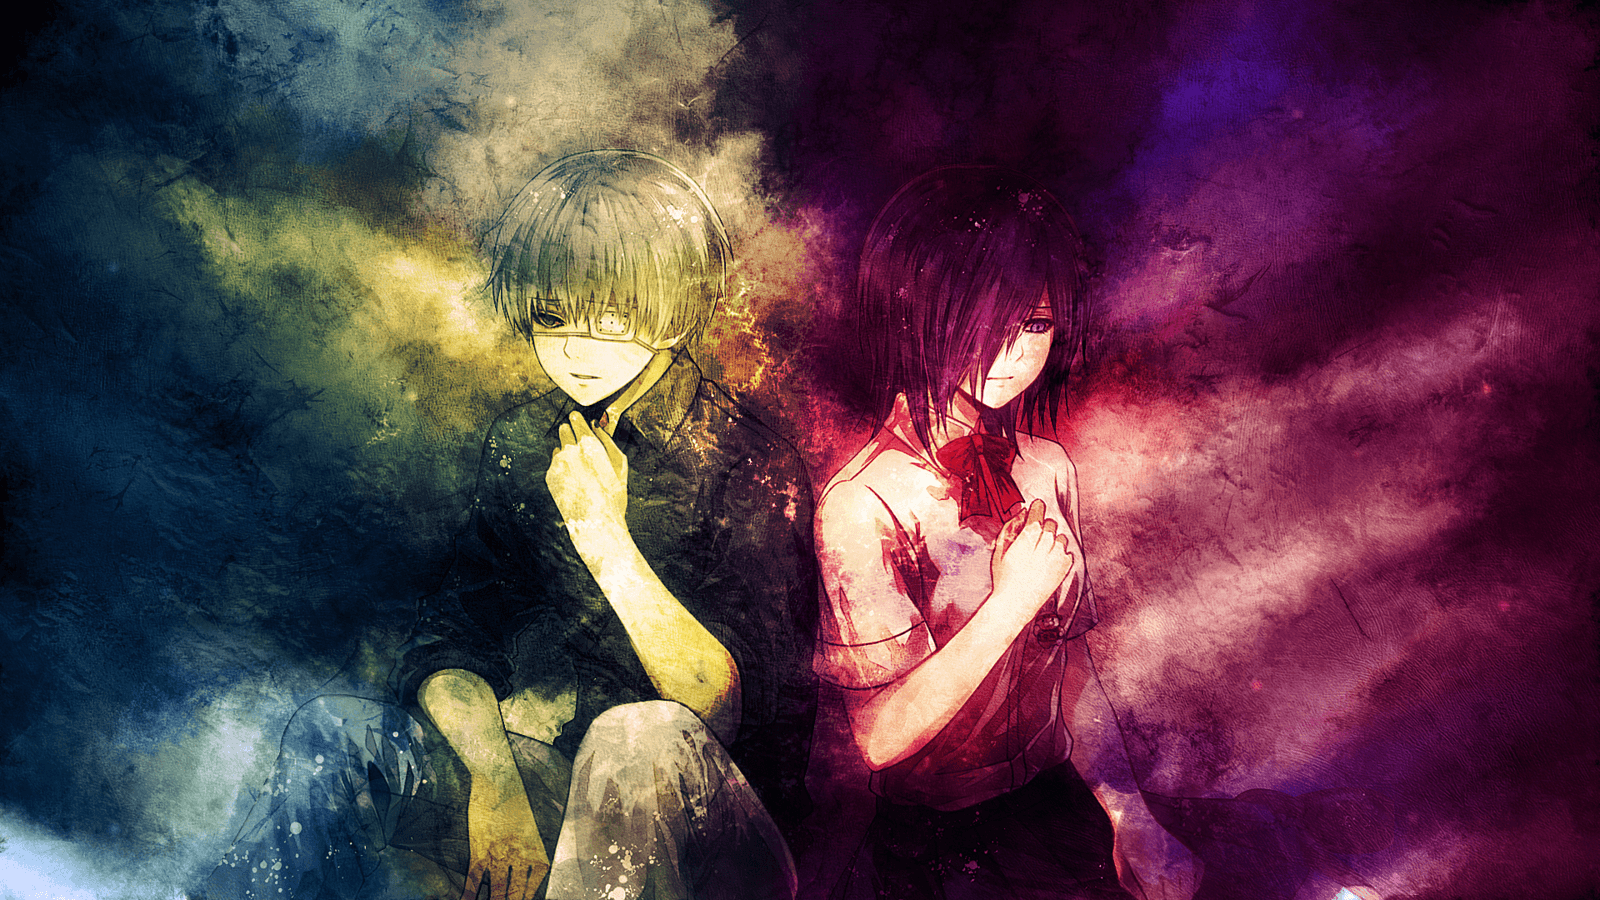 Tokyo Ghoul Wallpapers - Top Free Tokyo Ghoul Backgrounds